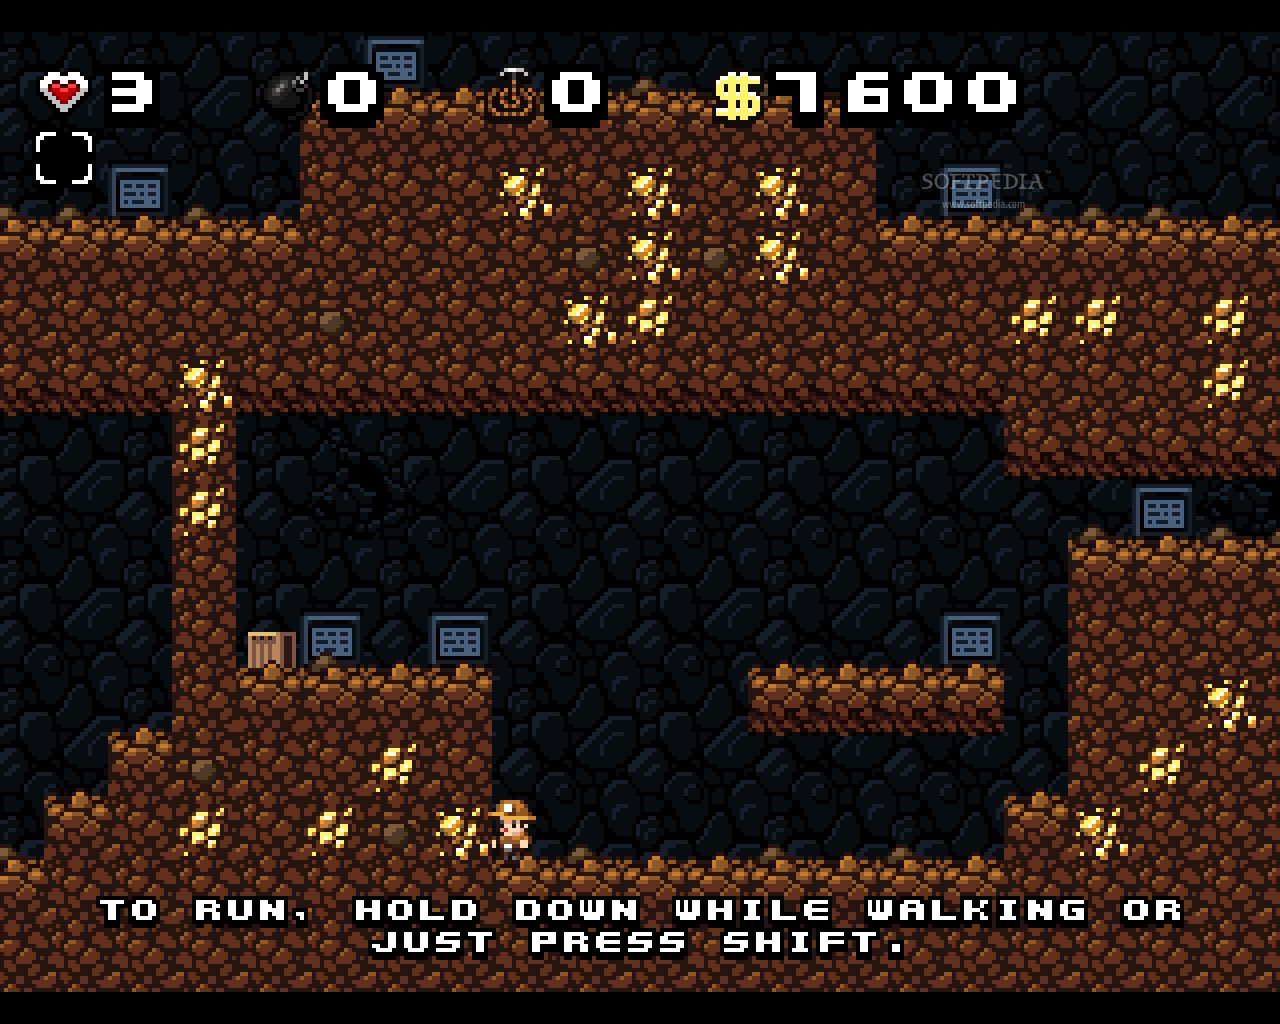 Spelunky screenshot 2